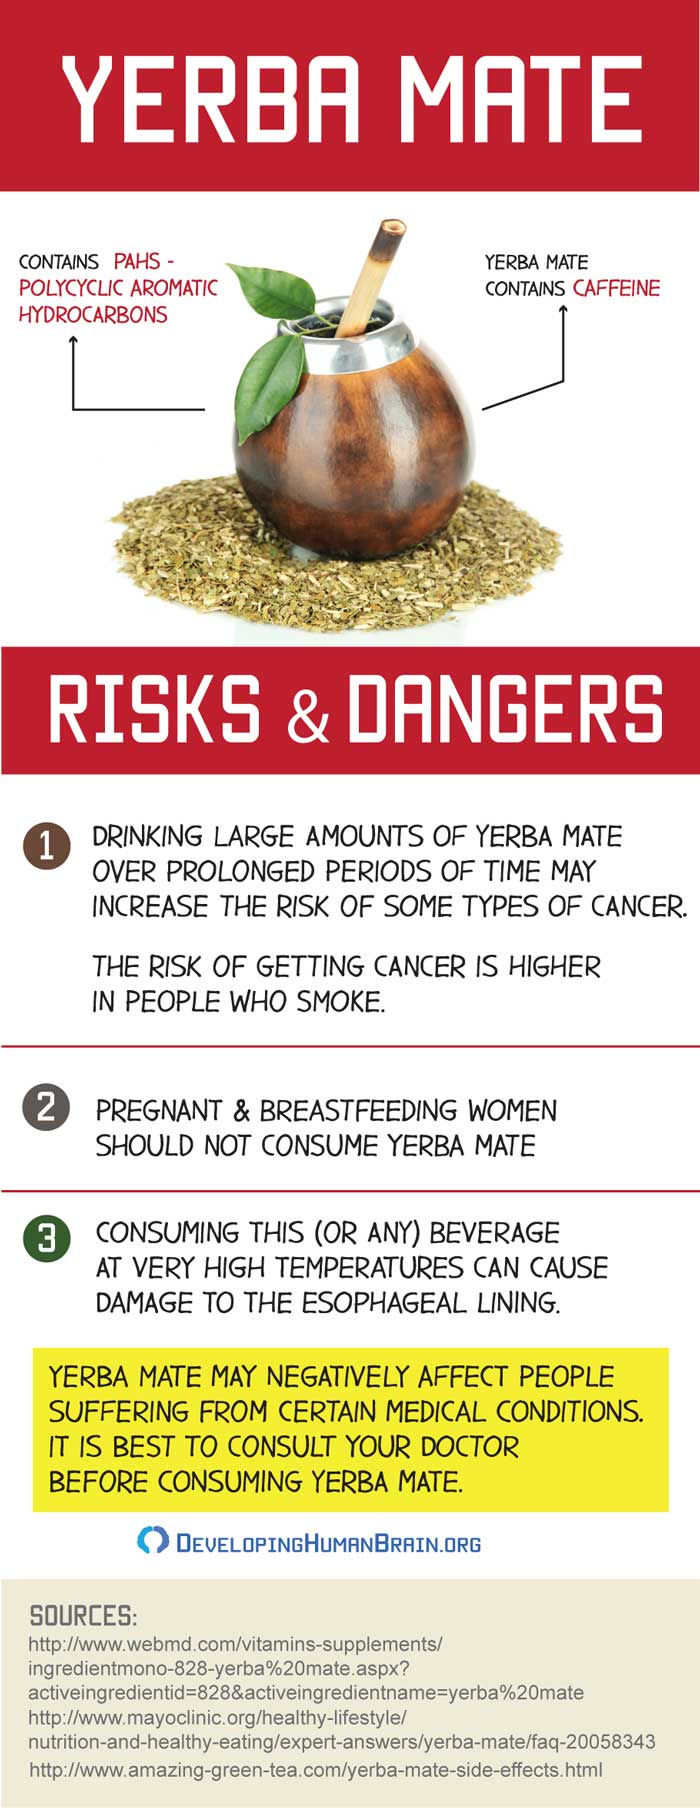 yerba mate dangers infographic